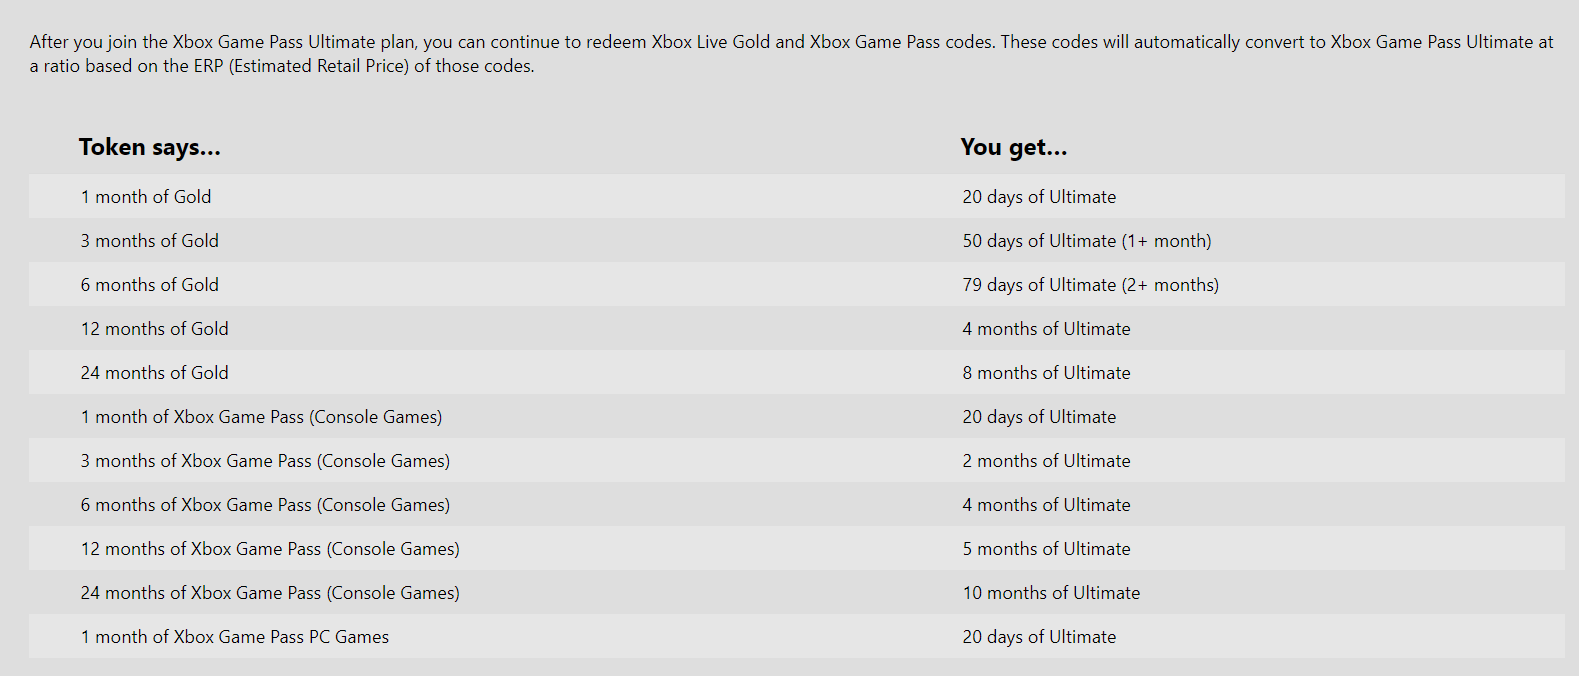 Xbox Game Pass Ultimate conversion chart